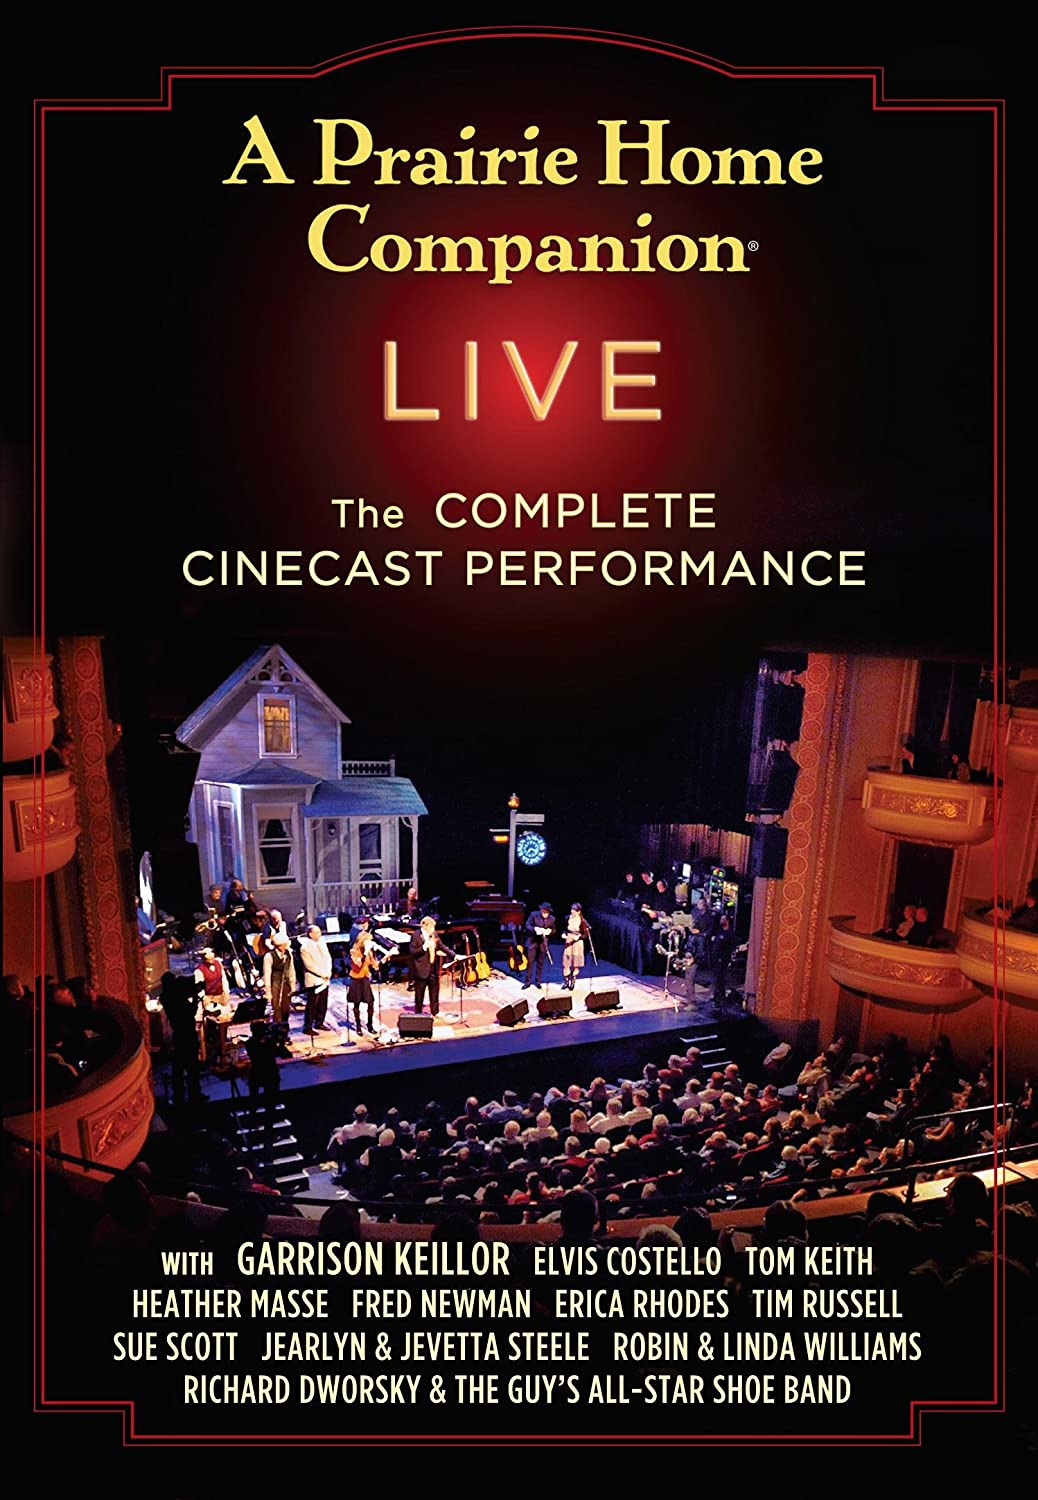 Amazon.com: A Prairie Home Companion Live: The Complete Cinecast  Performance: Garrison Keillor: Movies & TV